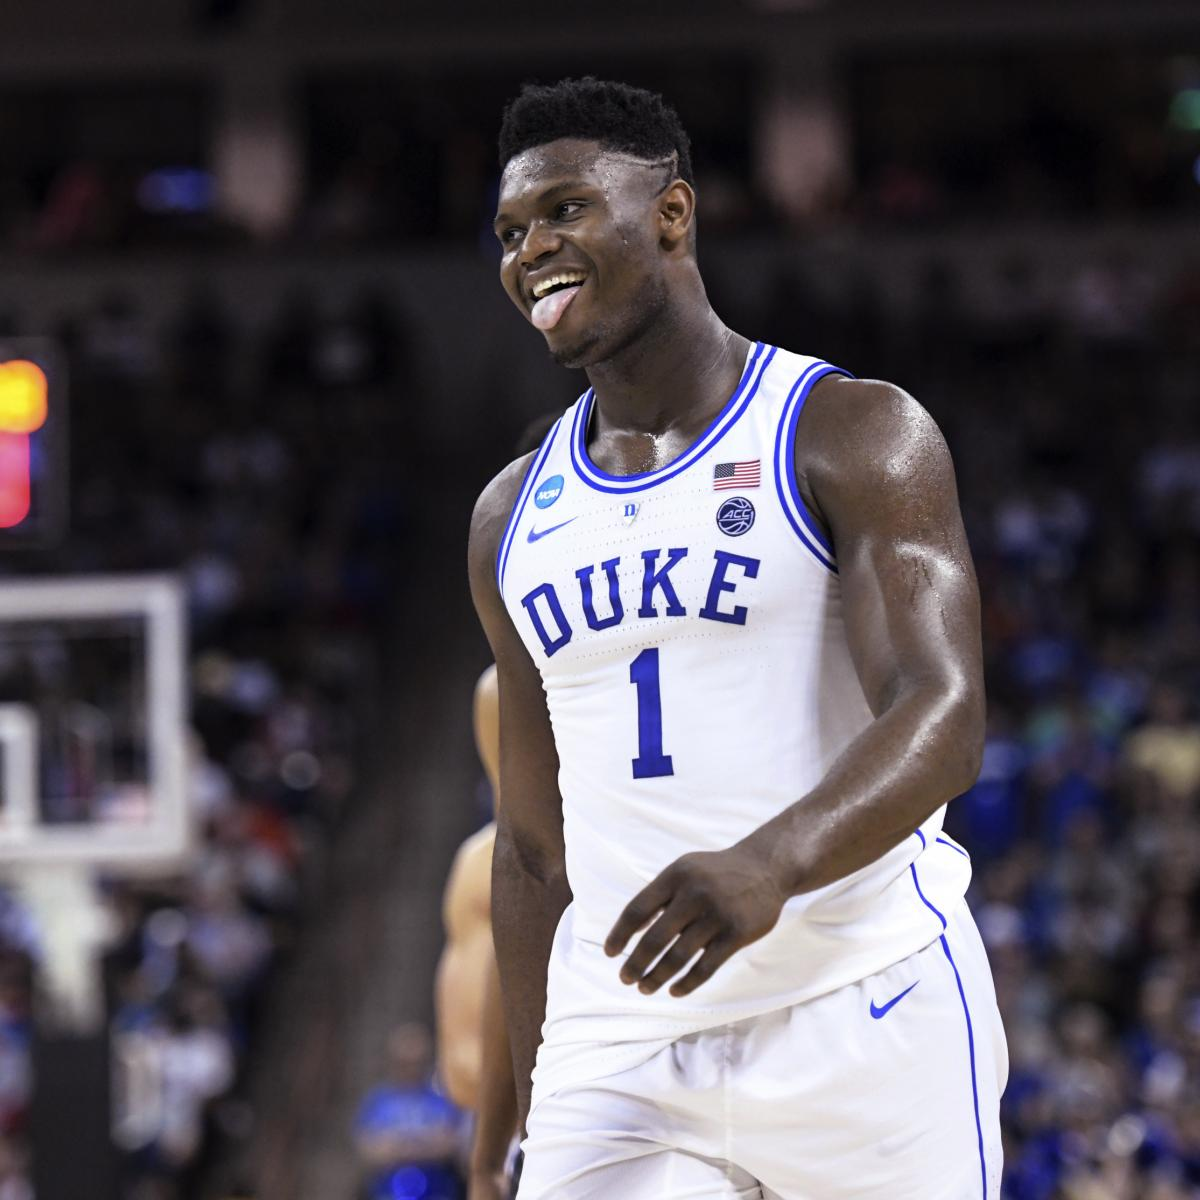 Duke Blue Devils stars RJ Barrett and Cam Reddish have already declared for the 2019 NBA draft on June 20 at Barclays Center, and now, the basketball world awaits Zion Williamson 's decision...